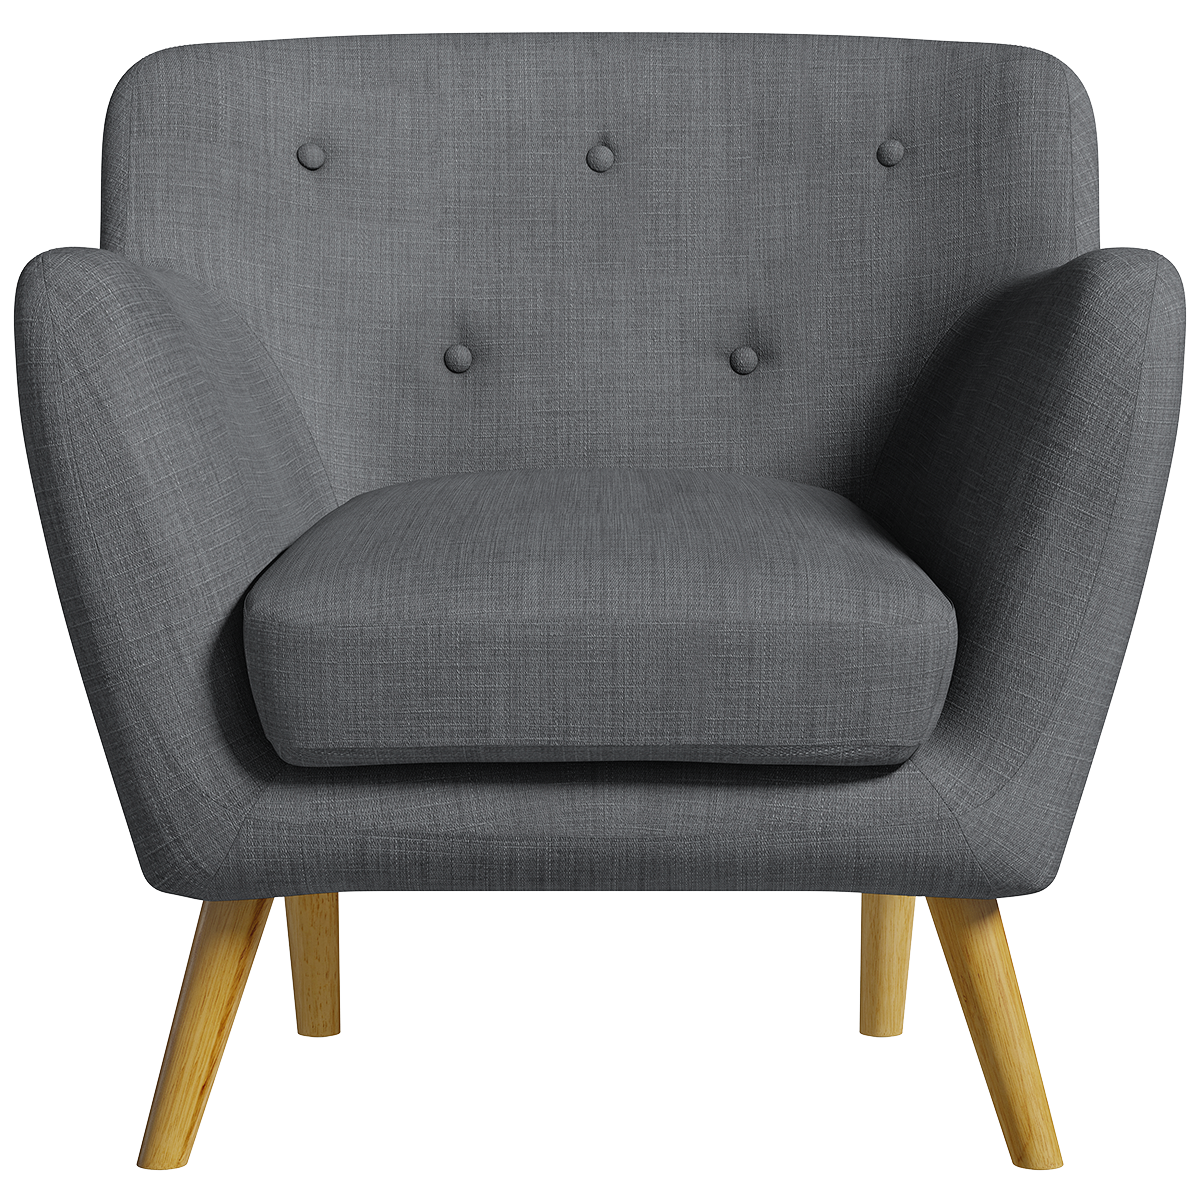 Holborn Armchair - Charcoal with Light-Coloured Legs